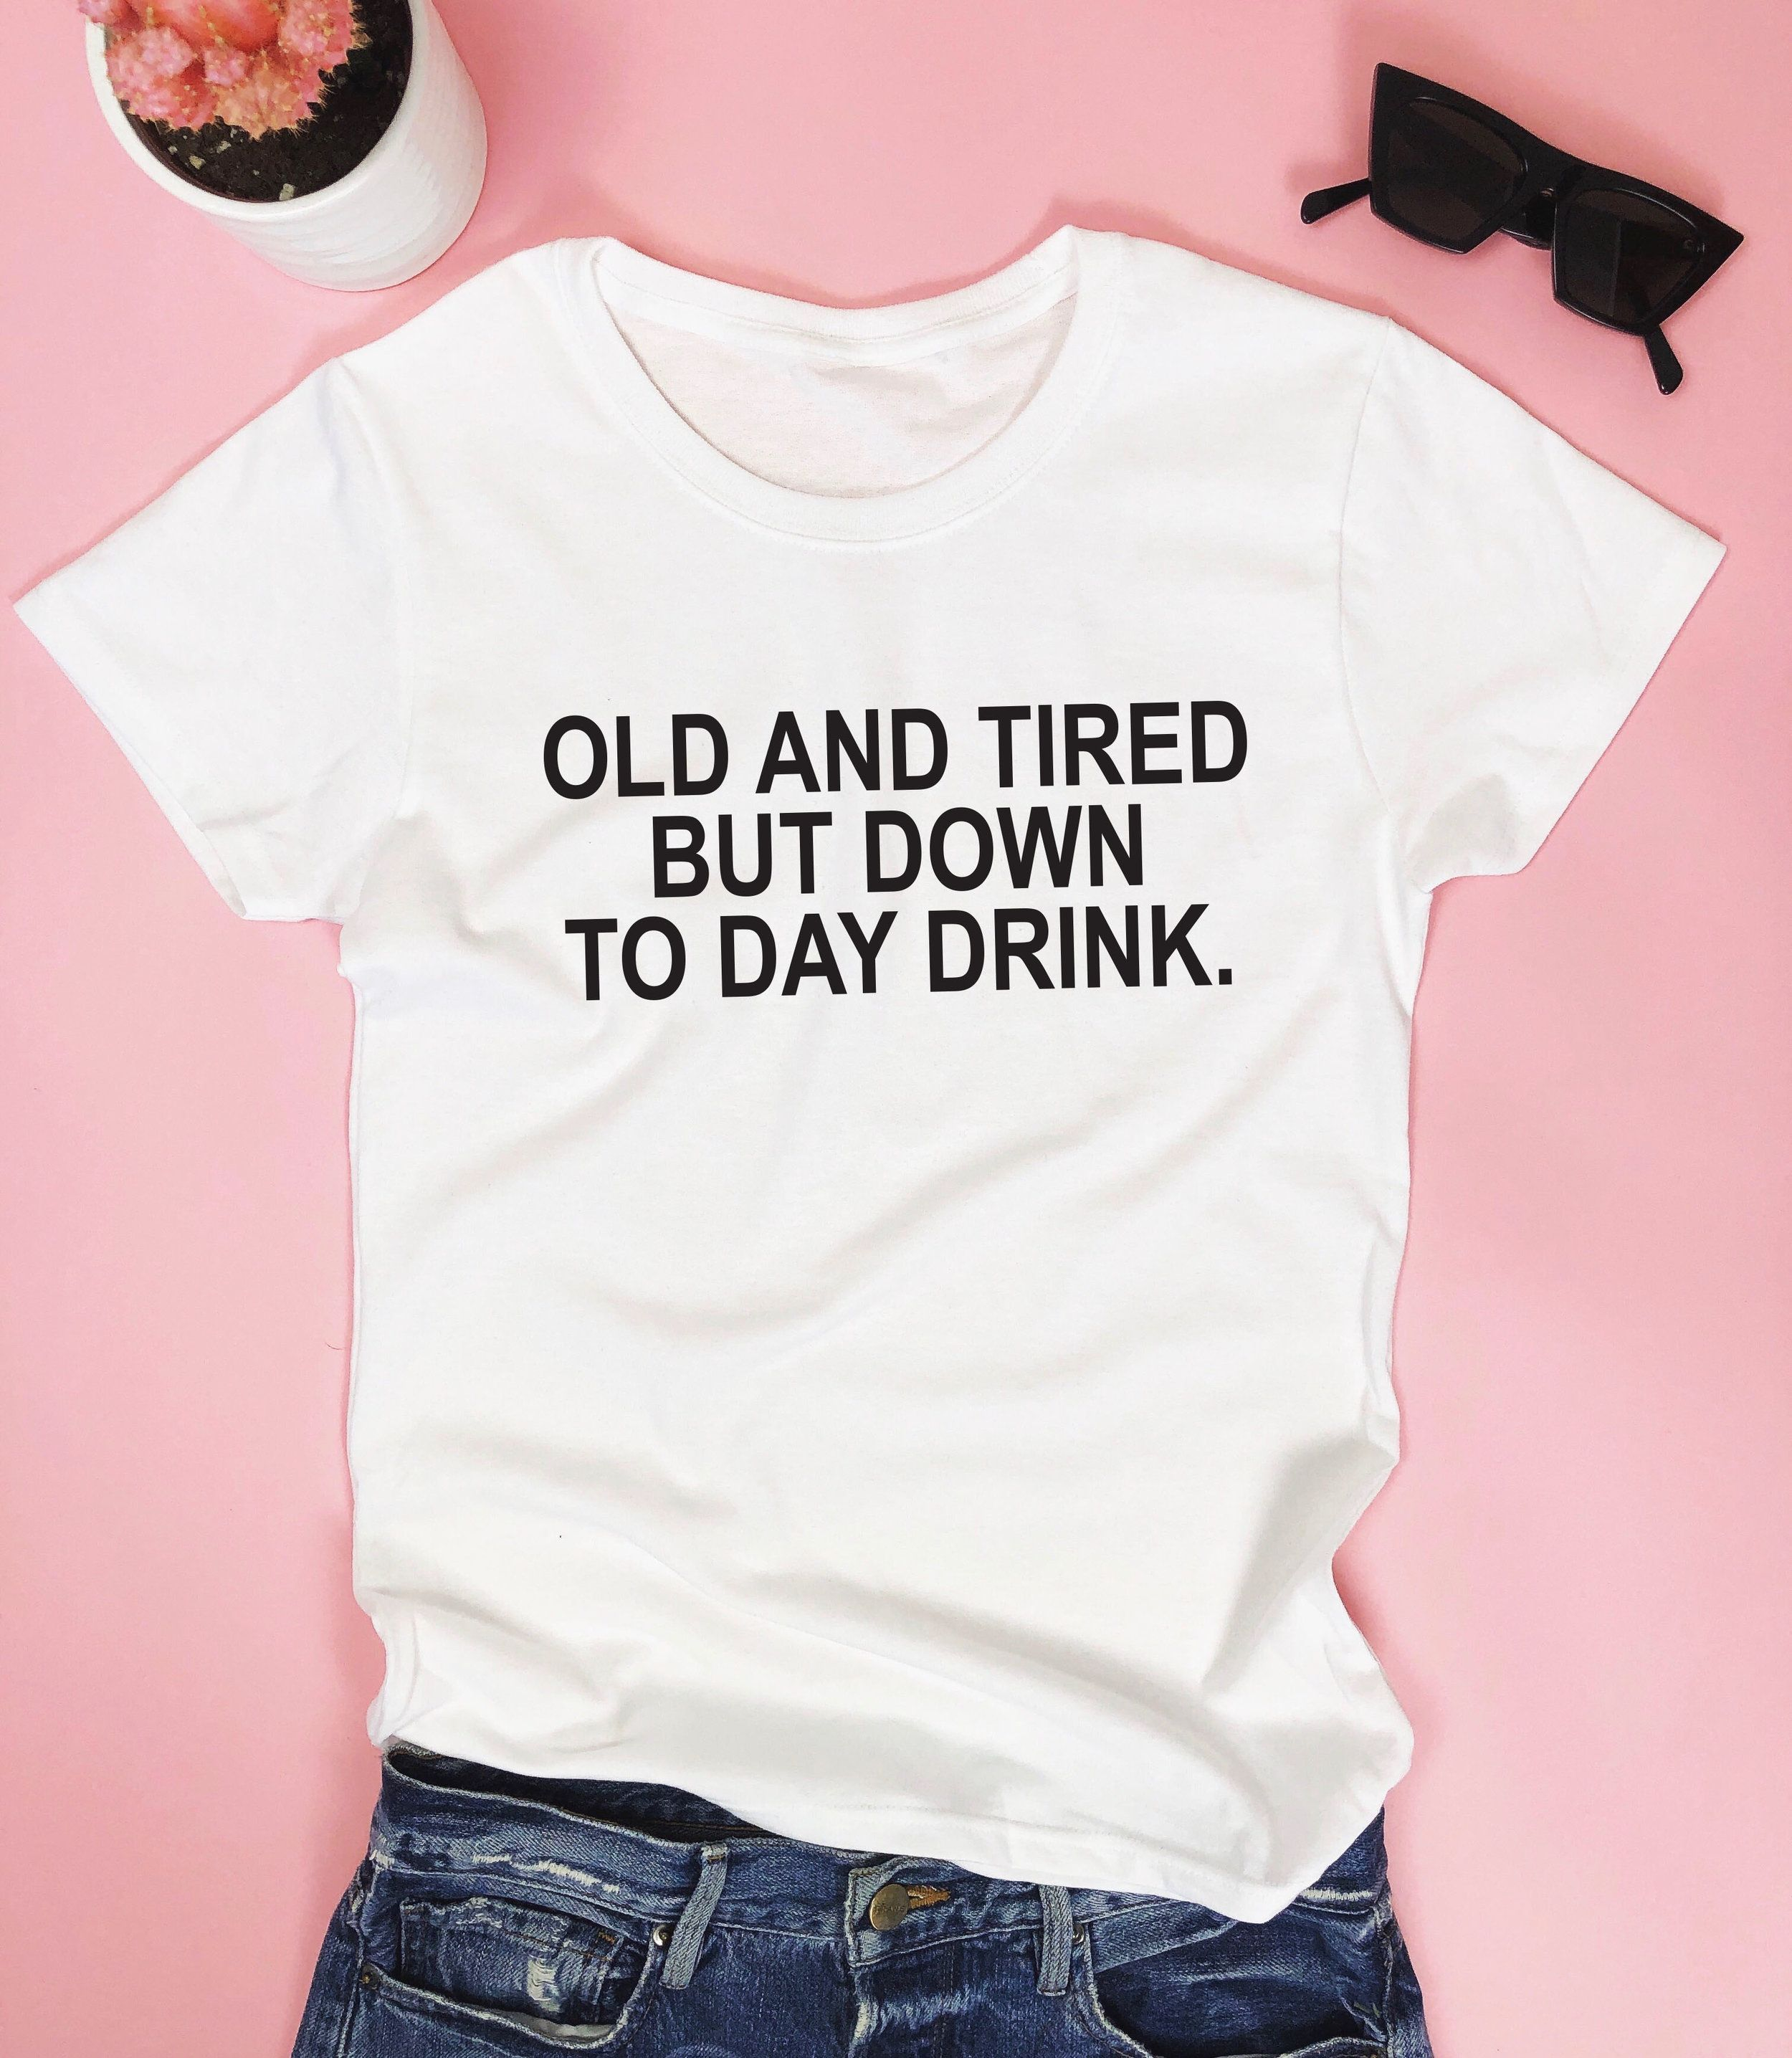 Old And Tired But Down To Day Drink T Shirt Nallashop Net T Shirts For Women Shirt Designs Cool T Shirts [ 2871 x 2500 Pixel ]